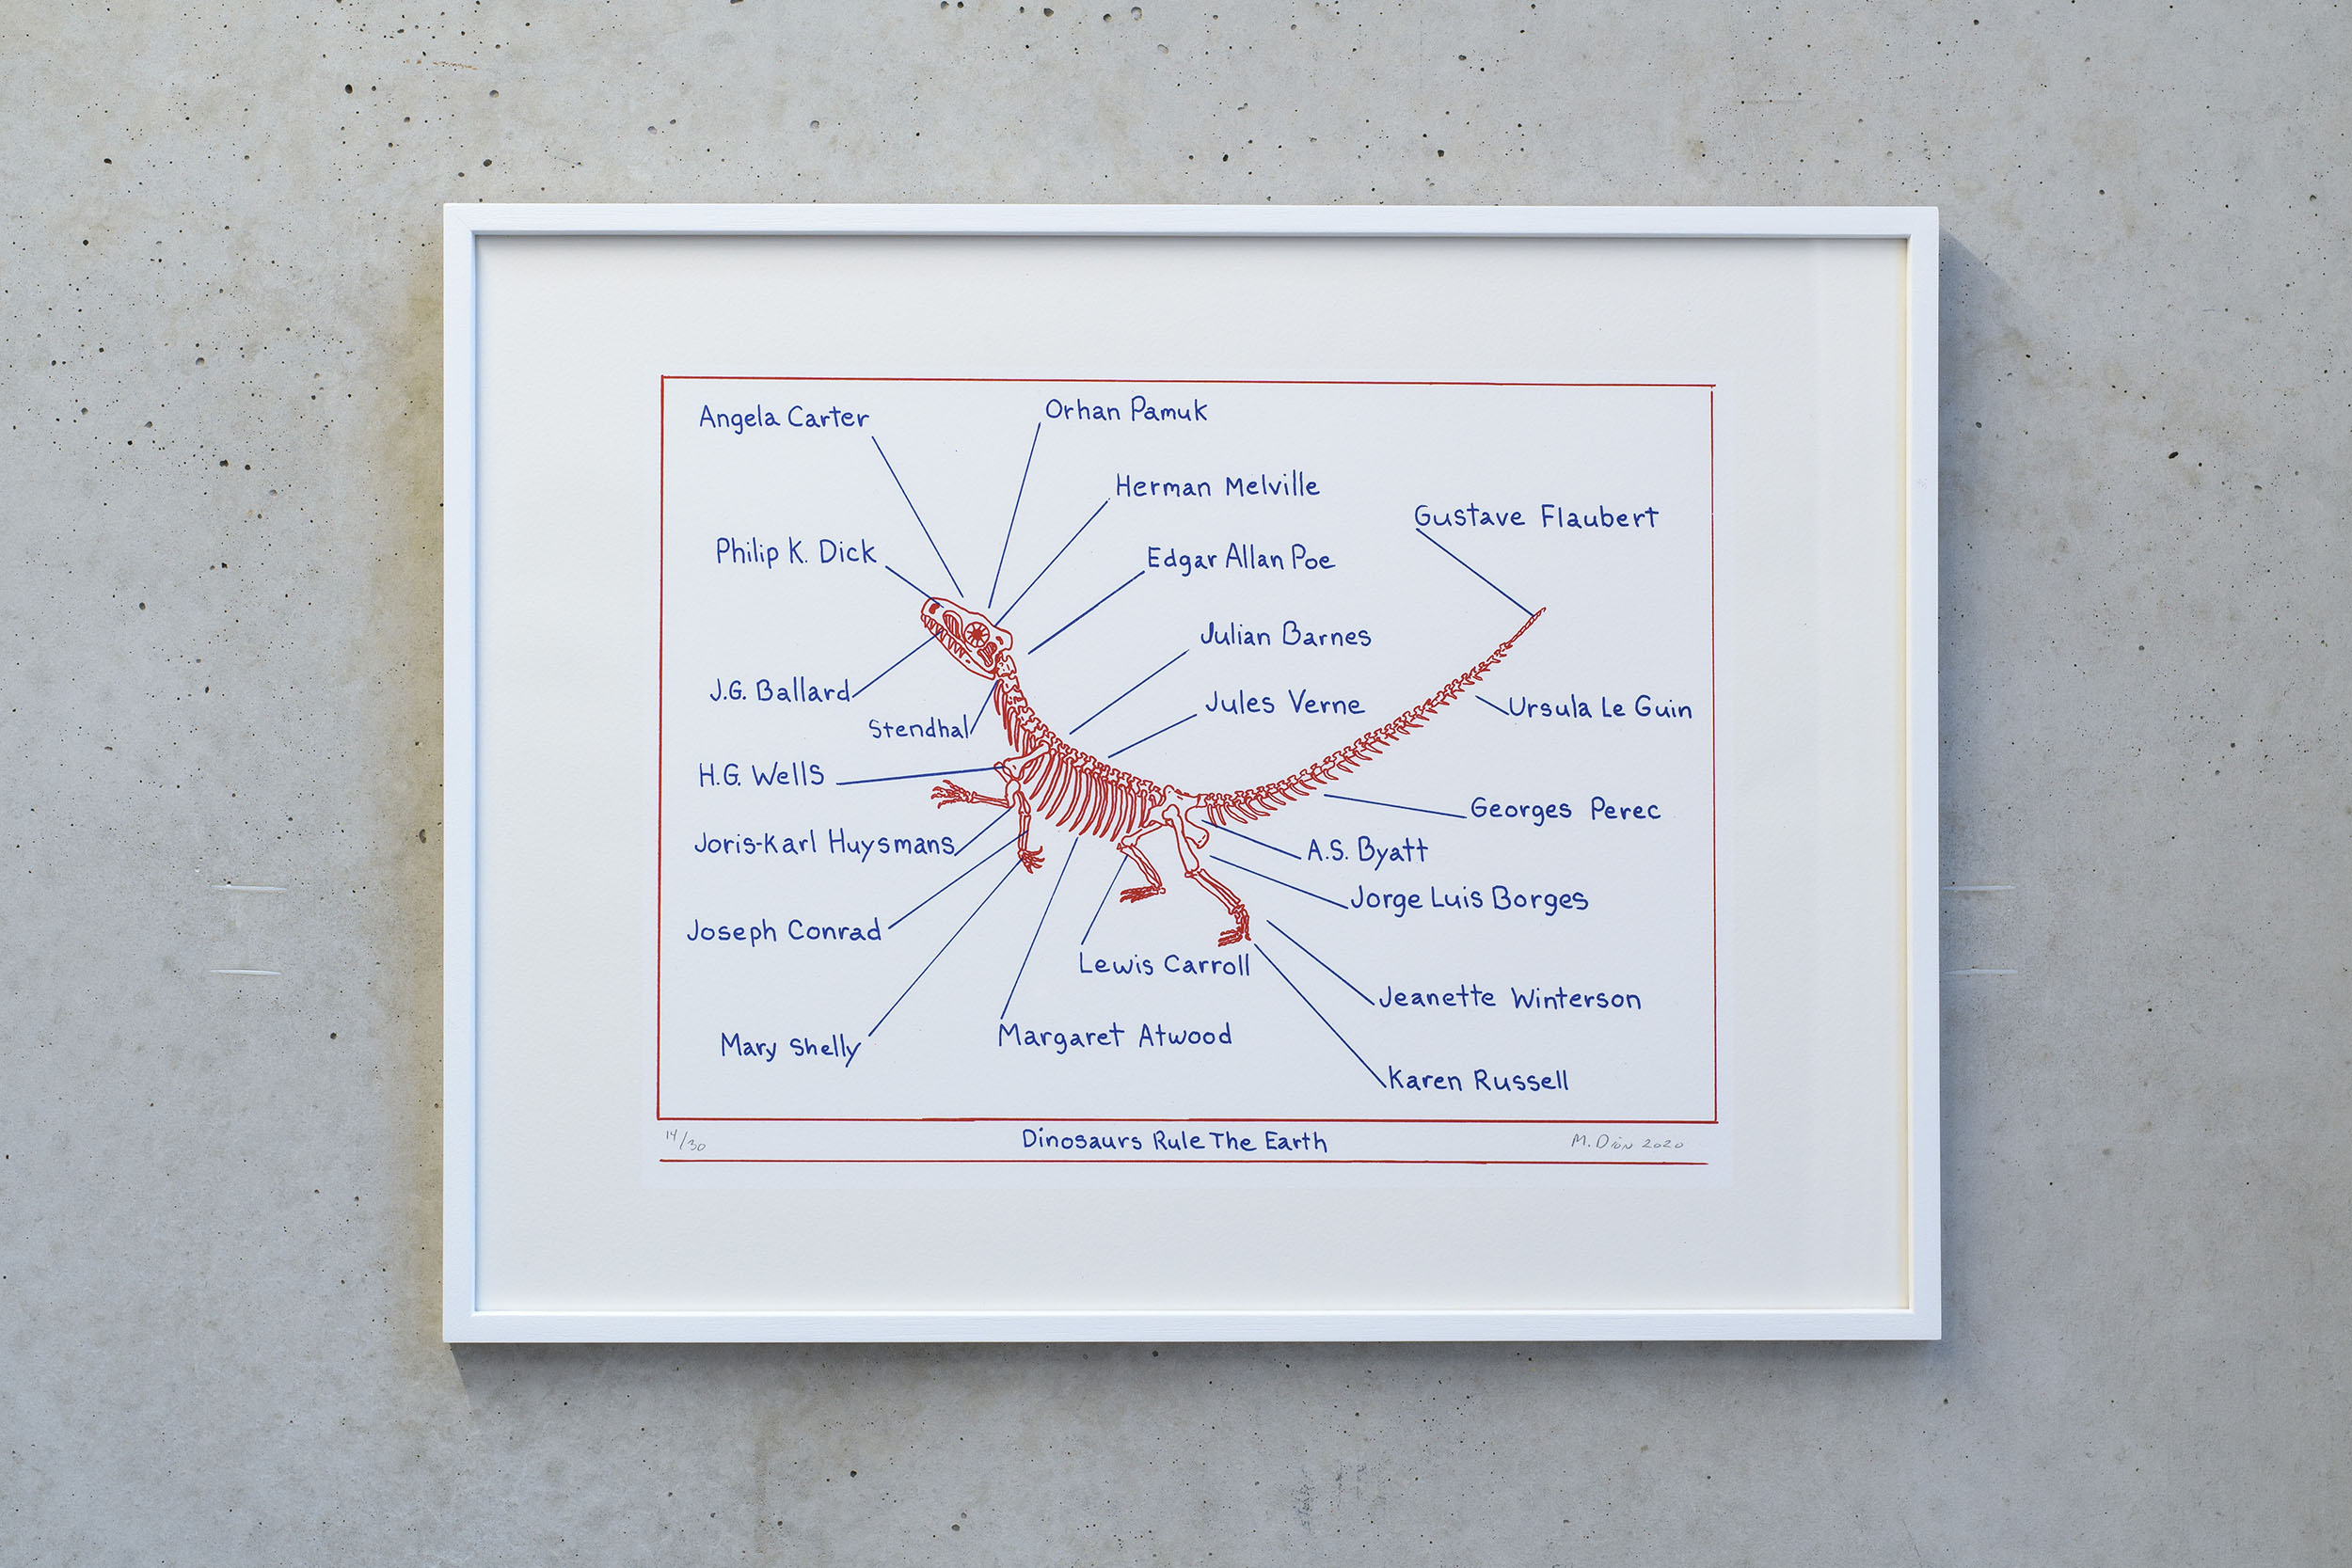 Mark Dion, Dinosaures Rule The Earth, 2020, red and blue pencil on paper, 52 x 39 cm, Edition of 30